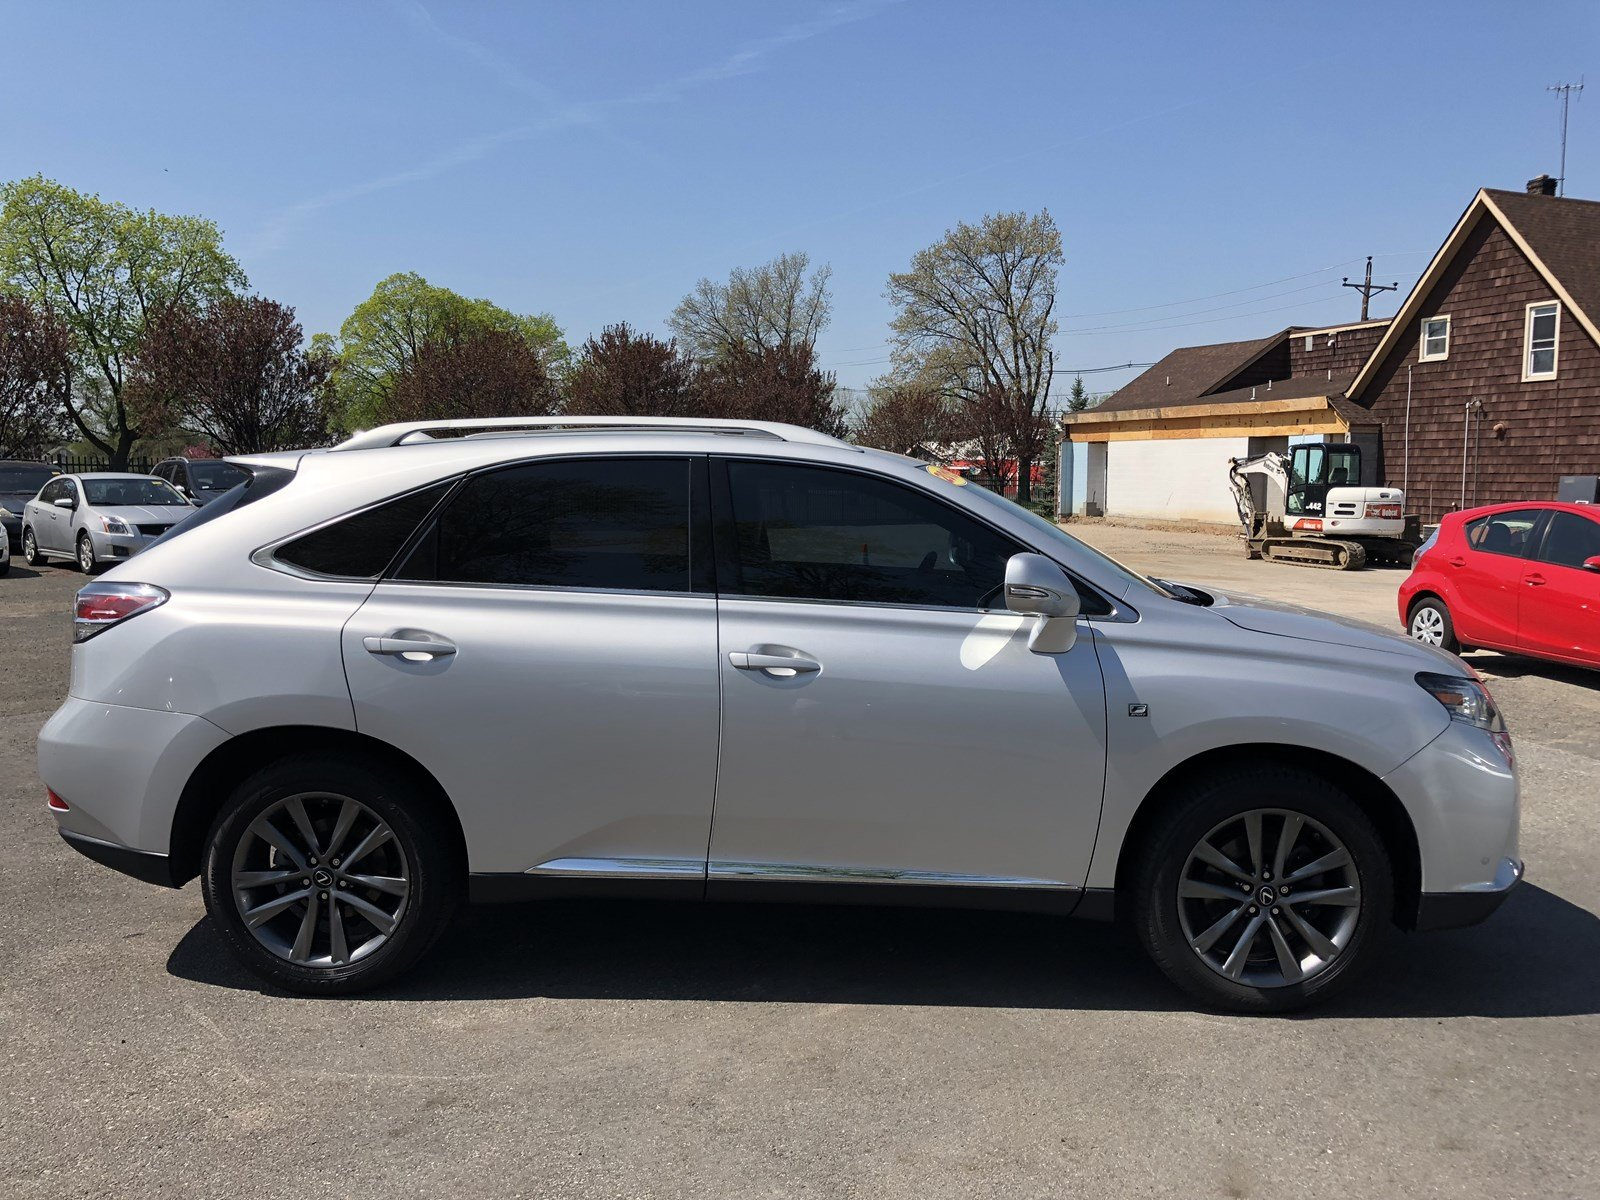 detail stonington basetrim trim auto rx used import iid at ct base lexus